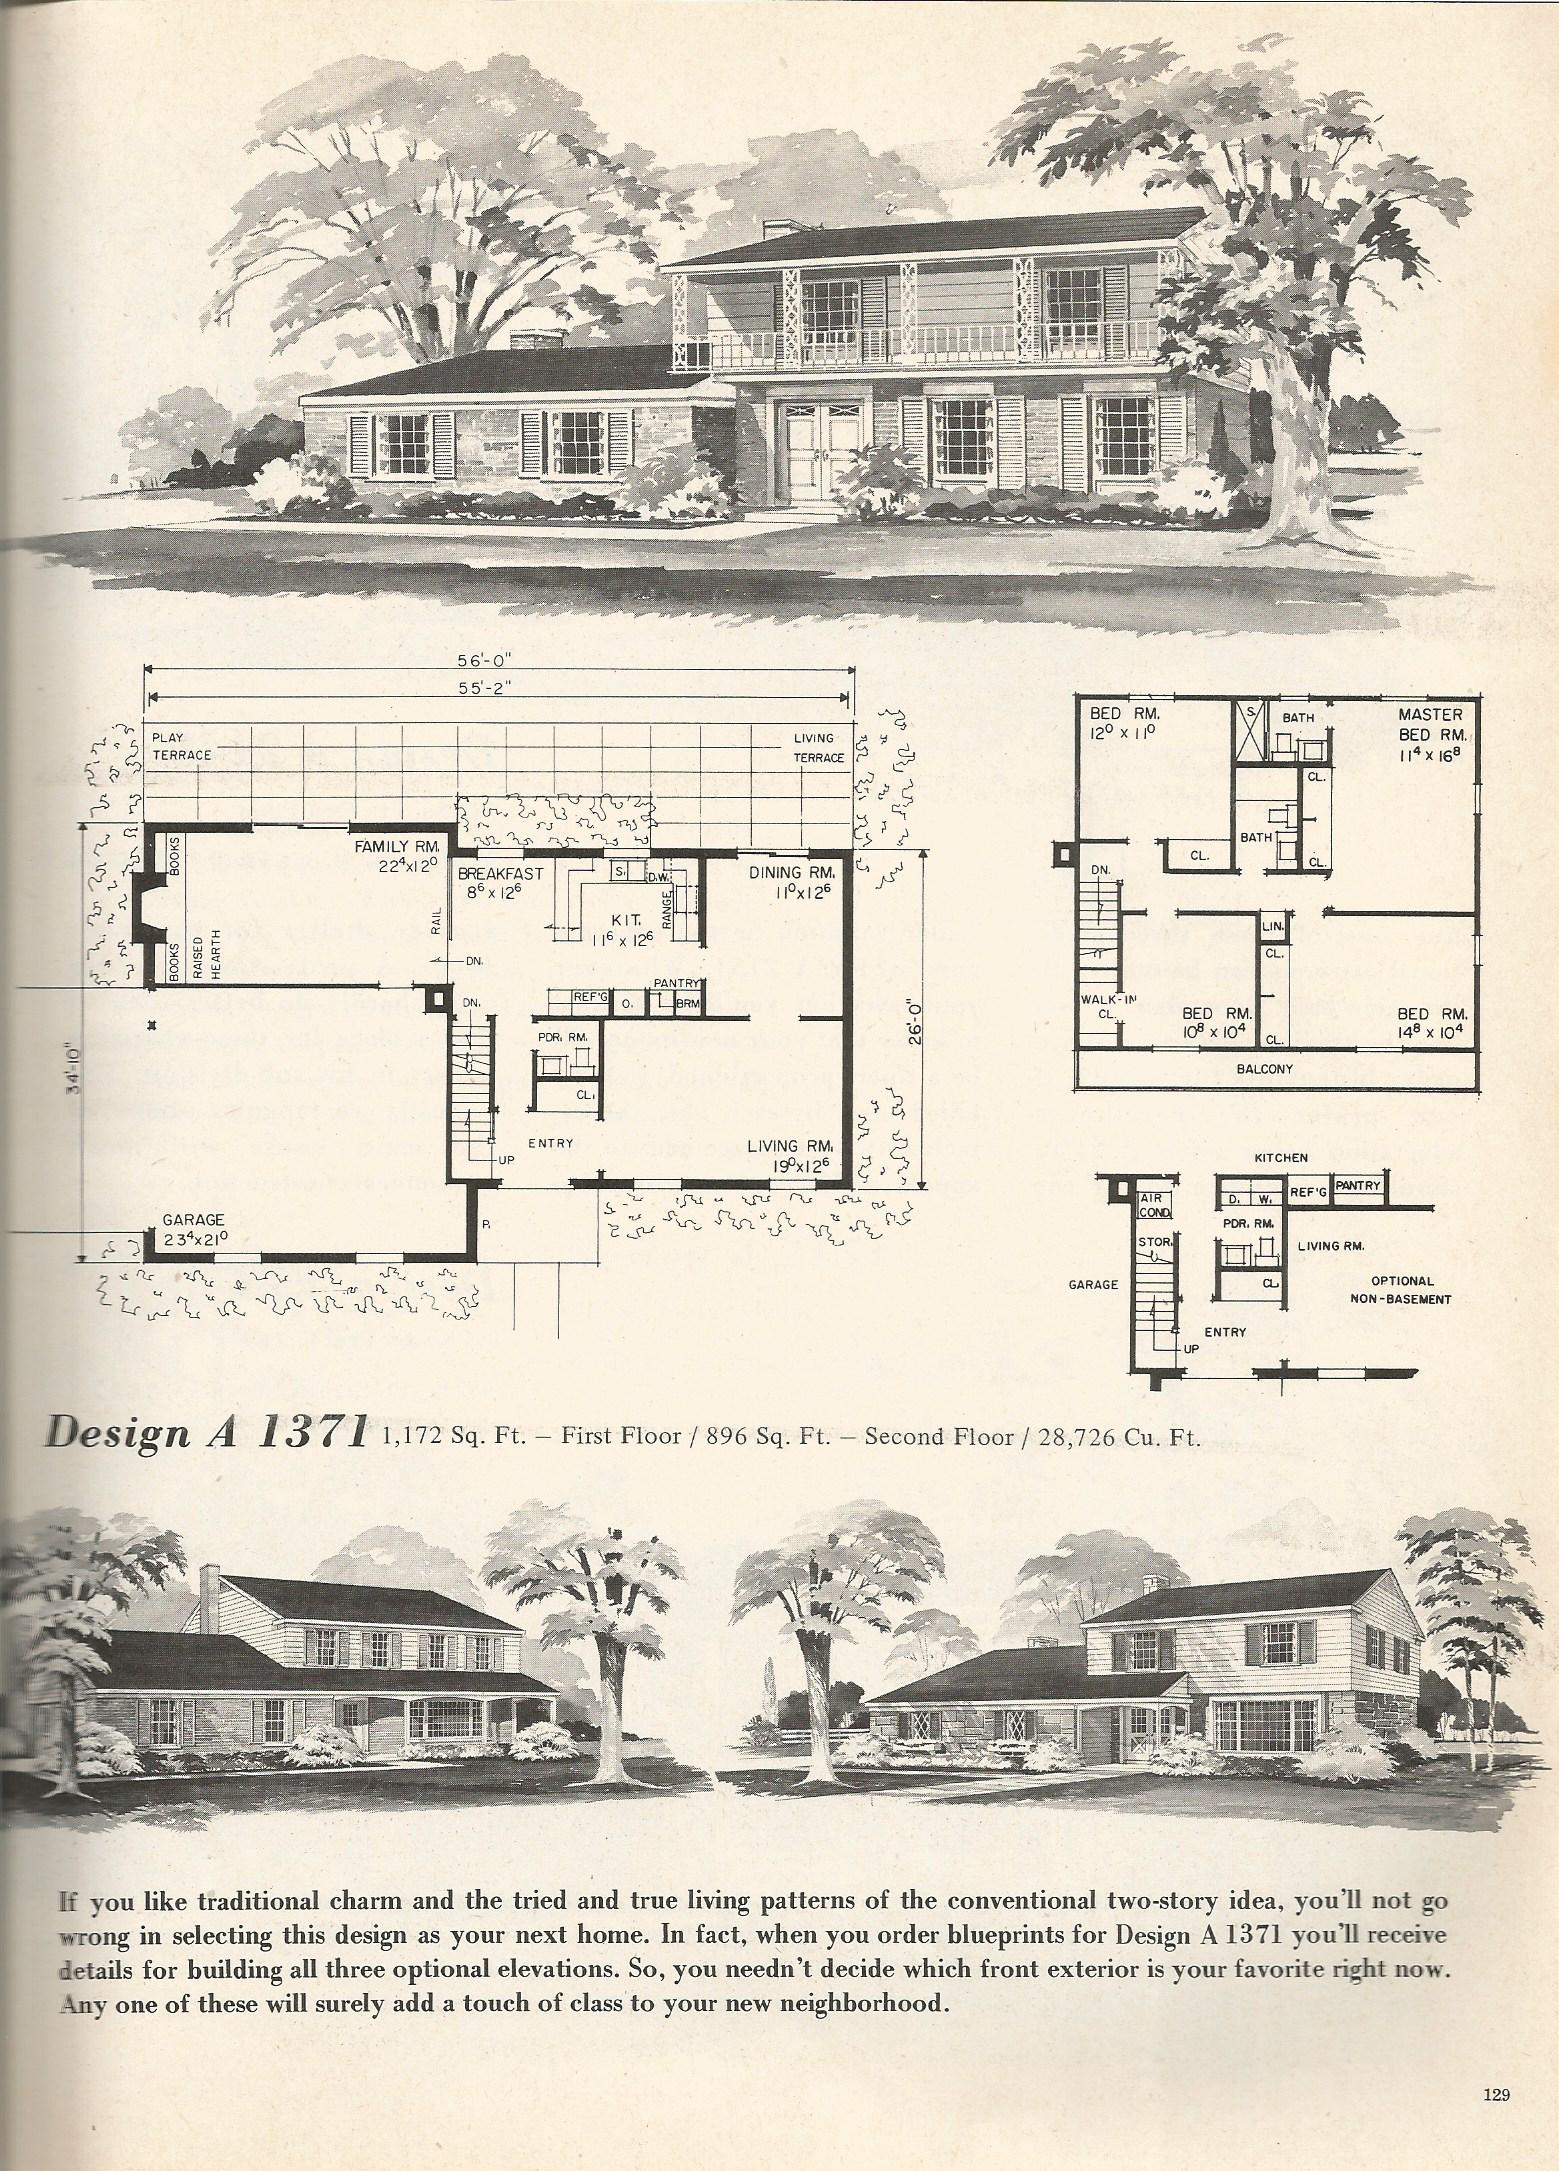 Vintage house plans 1371 antique alter ego for 1970s house floor plans